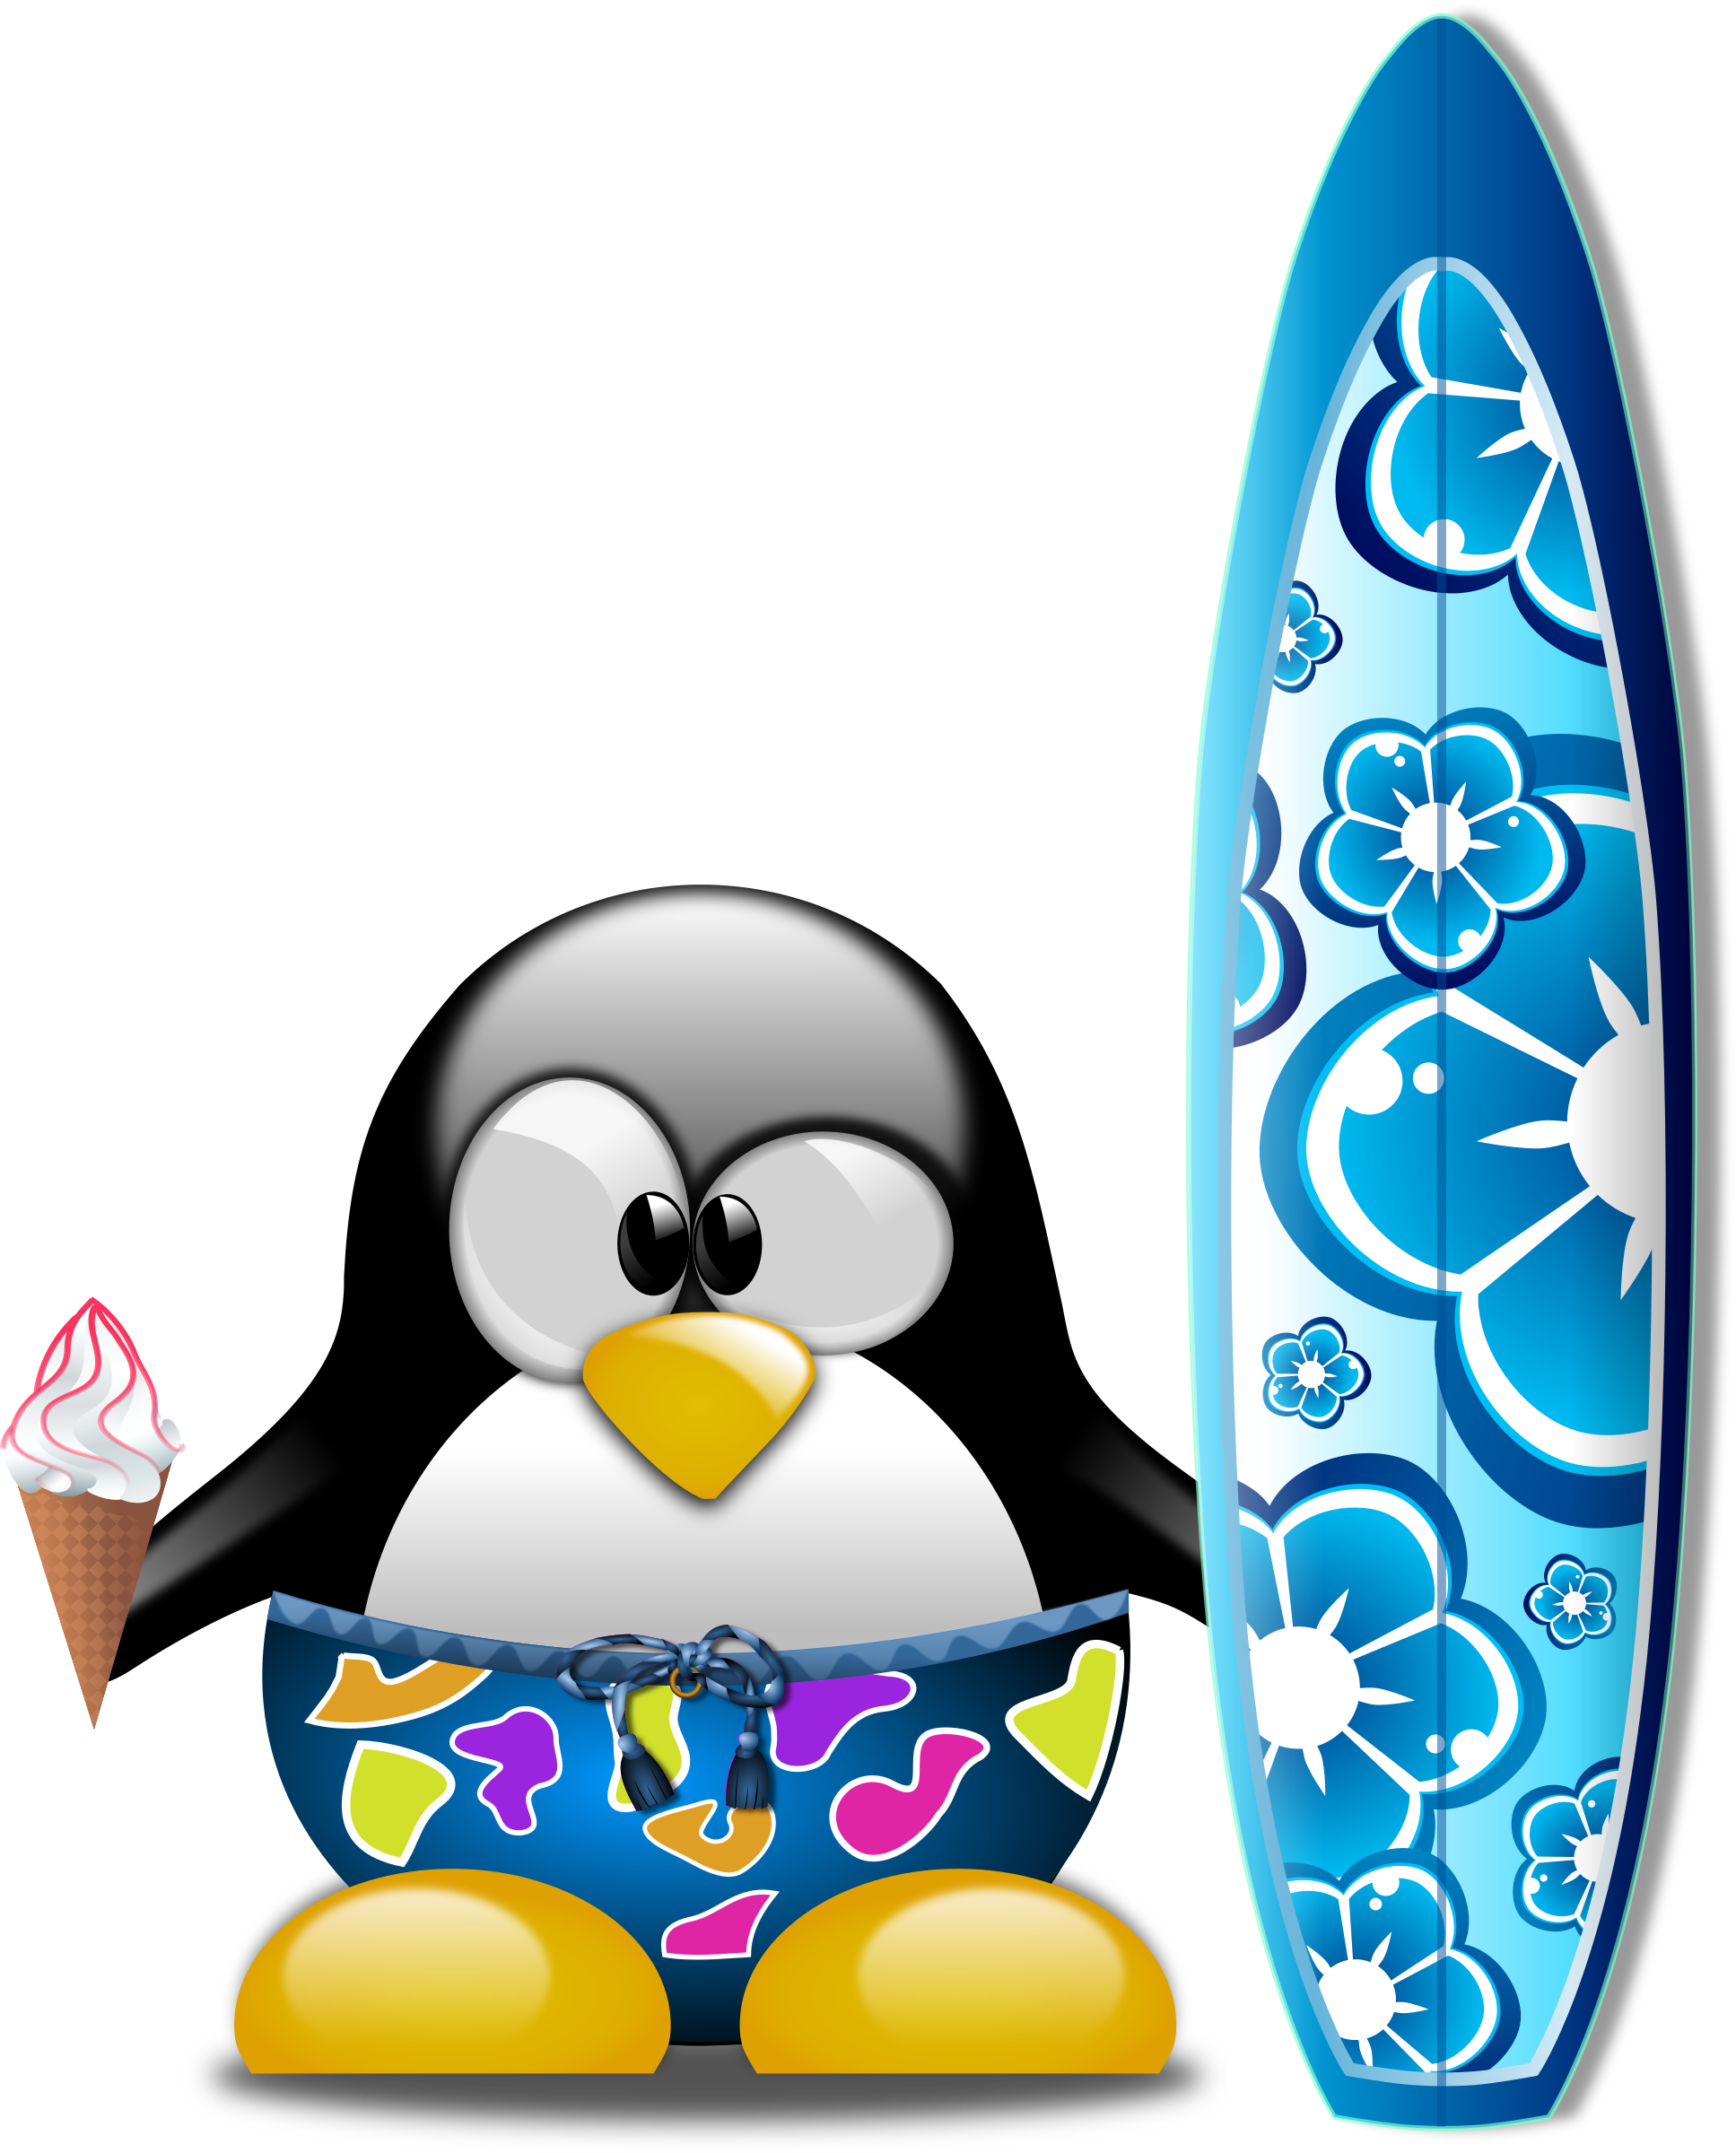 Tux the Surfer by Merlin2525